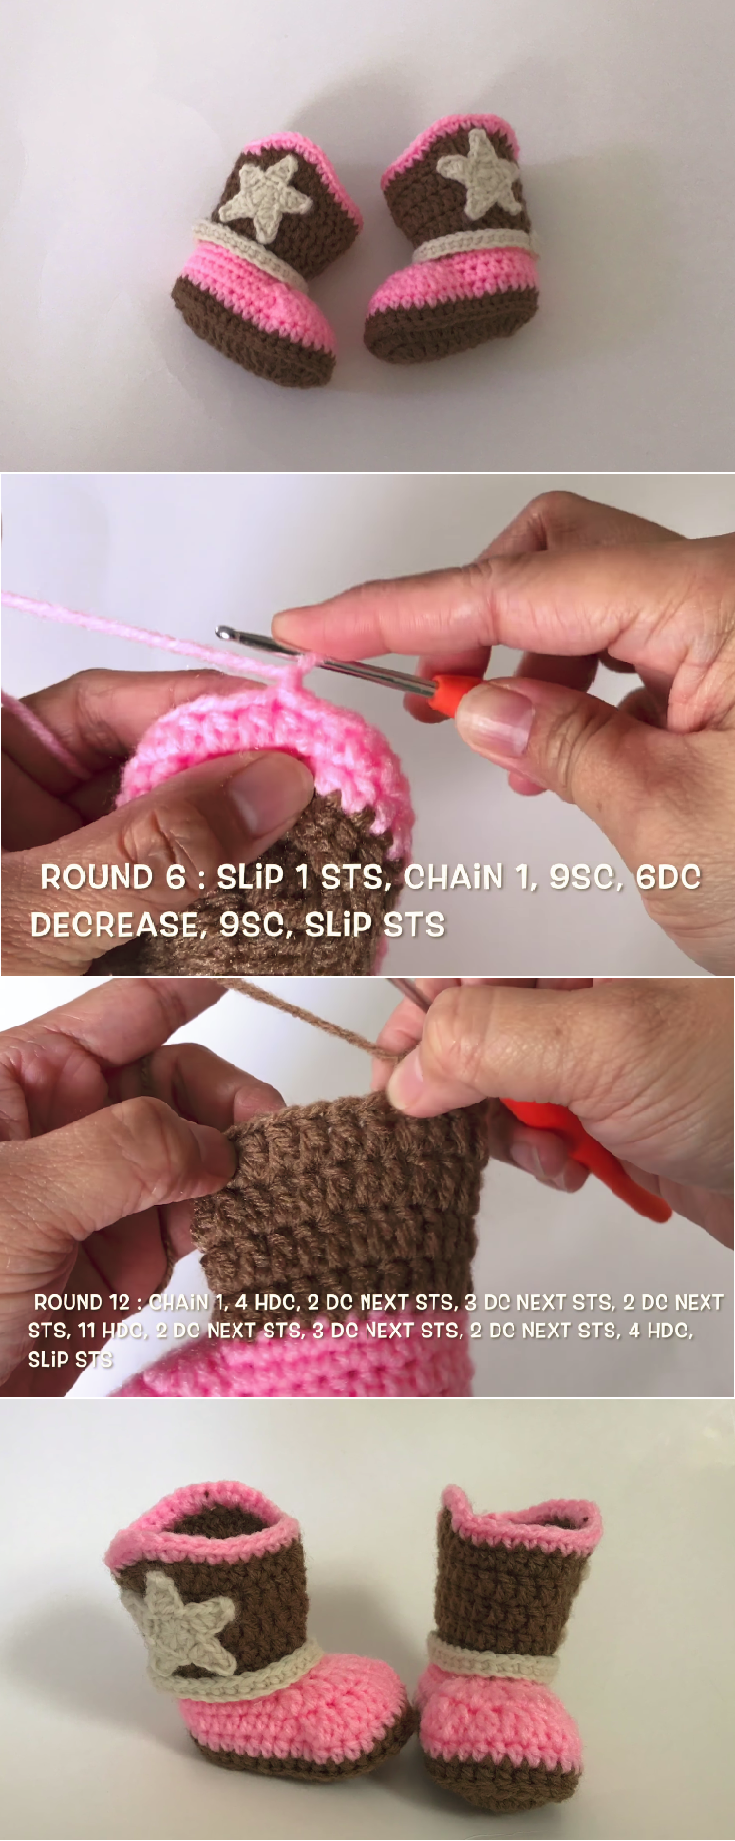 Crochet Easy Cowboy/Cowgirl Boots | Dicas importantes | Pinterest ...